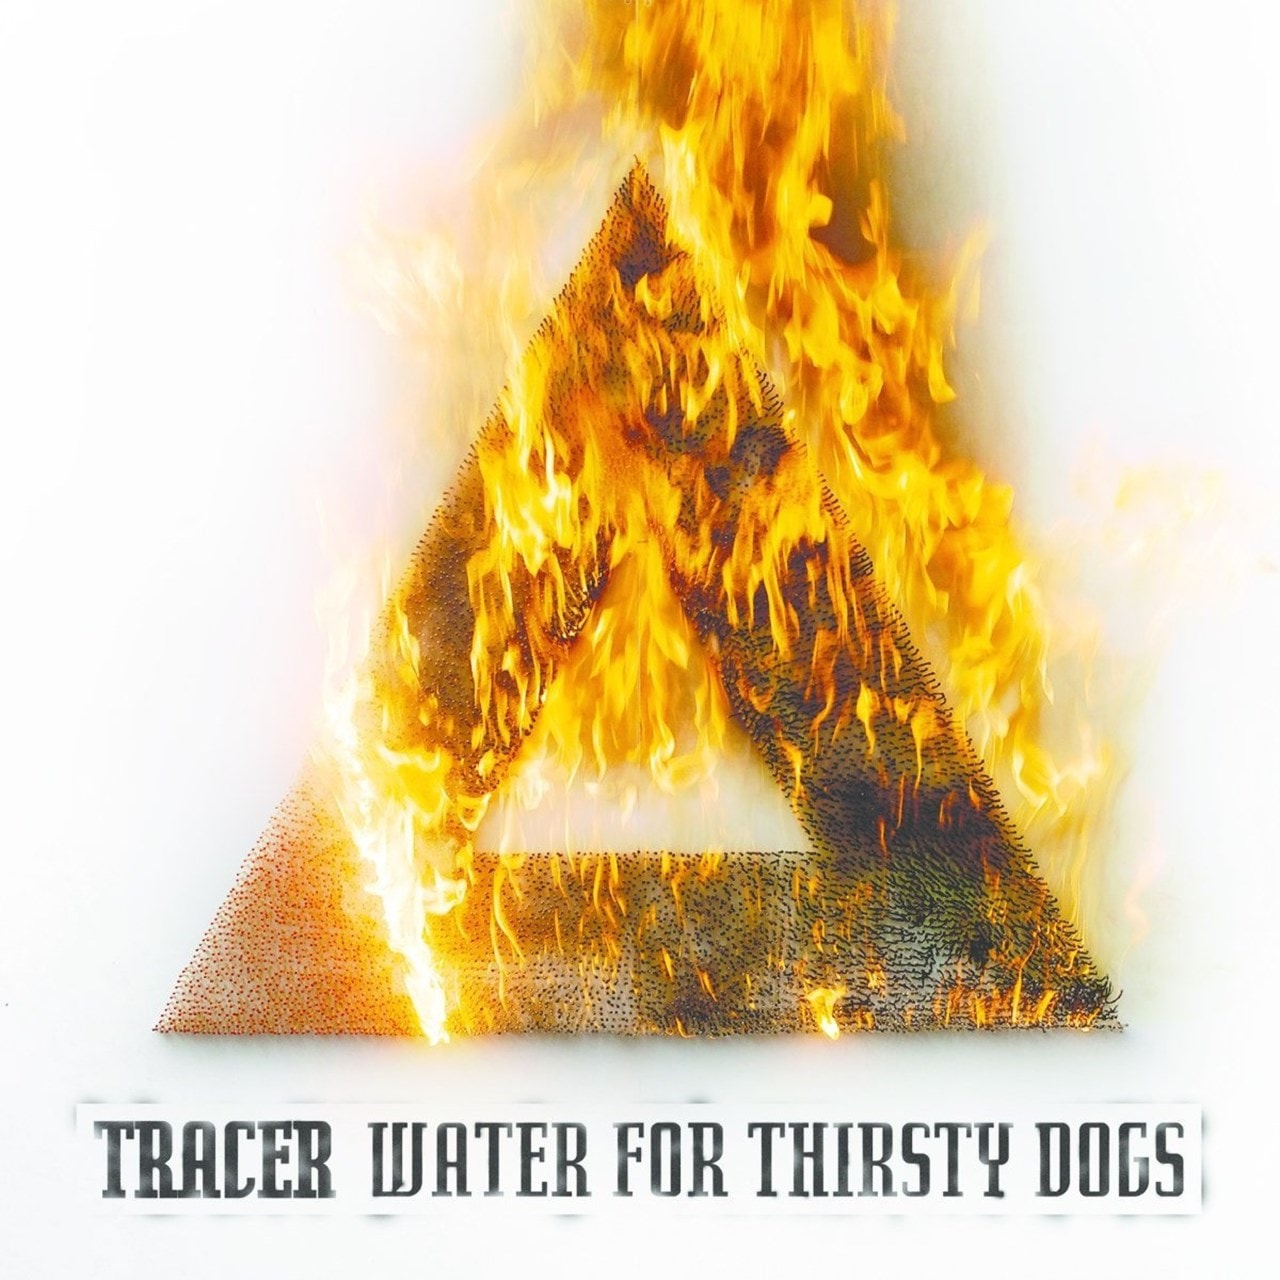 Water for Thirsty Dogs - 1